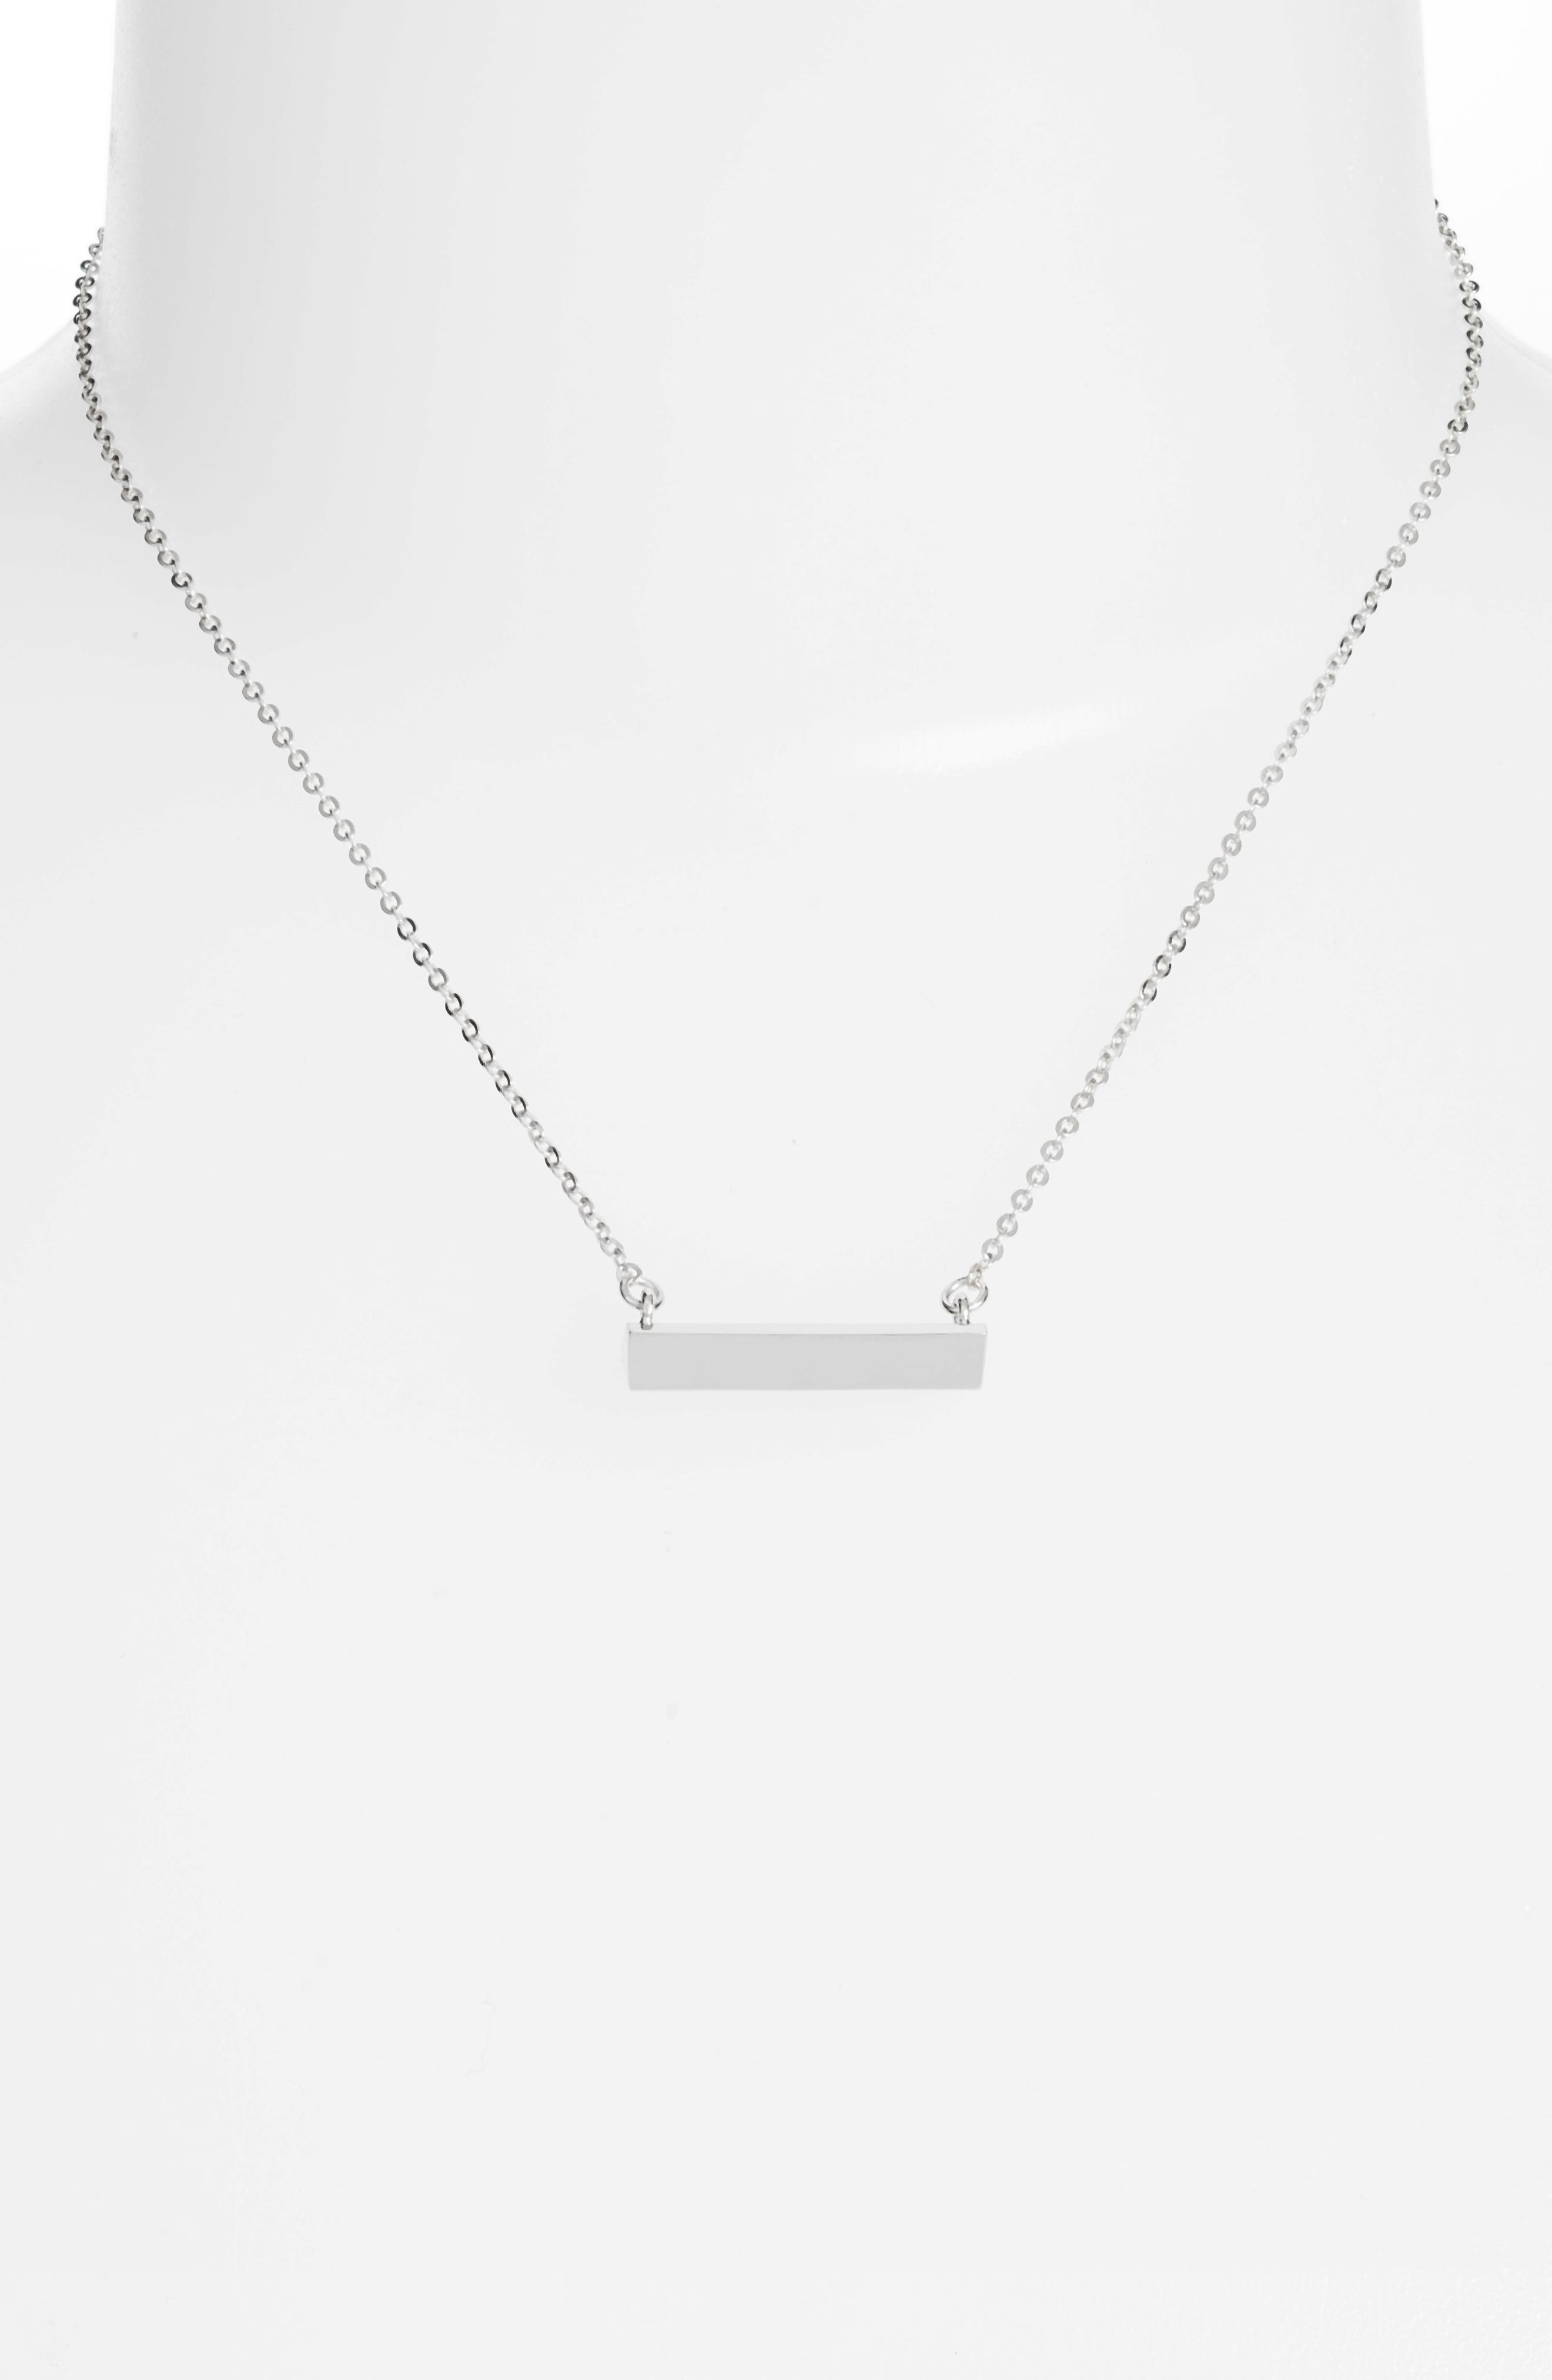 STELLA VALLE,                             Diamond Shaped Bar Pendant Necklace,                             Alternate thumbnail 2, color,                             040